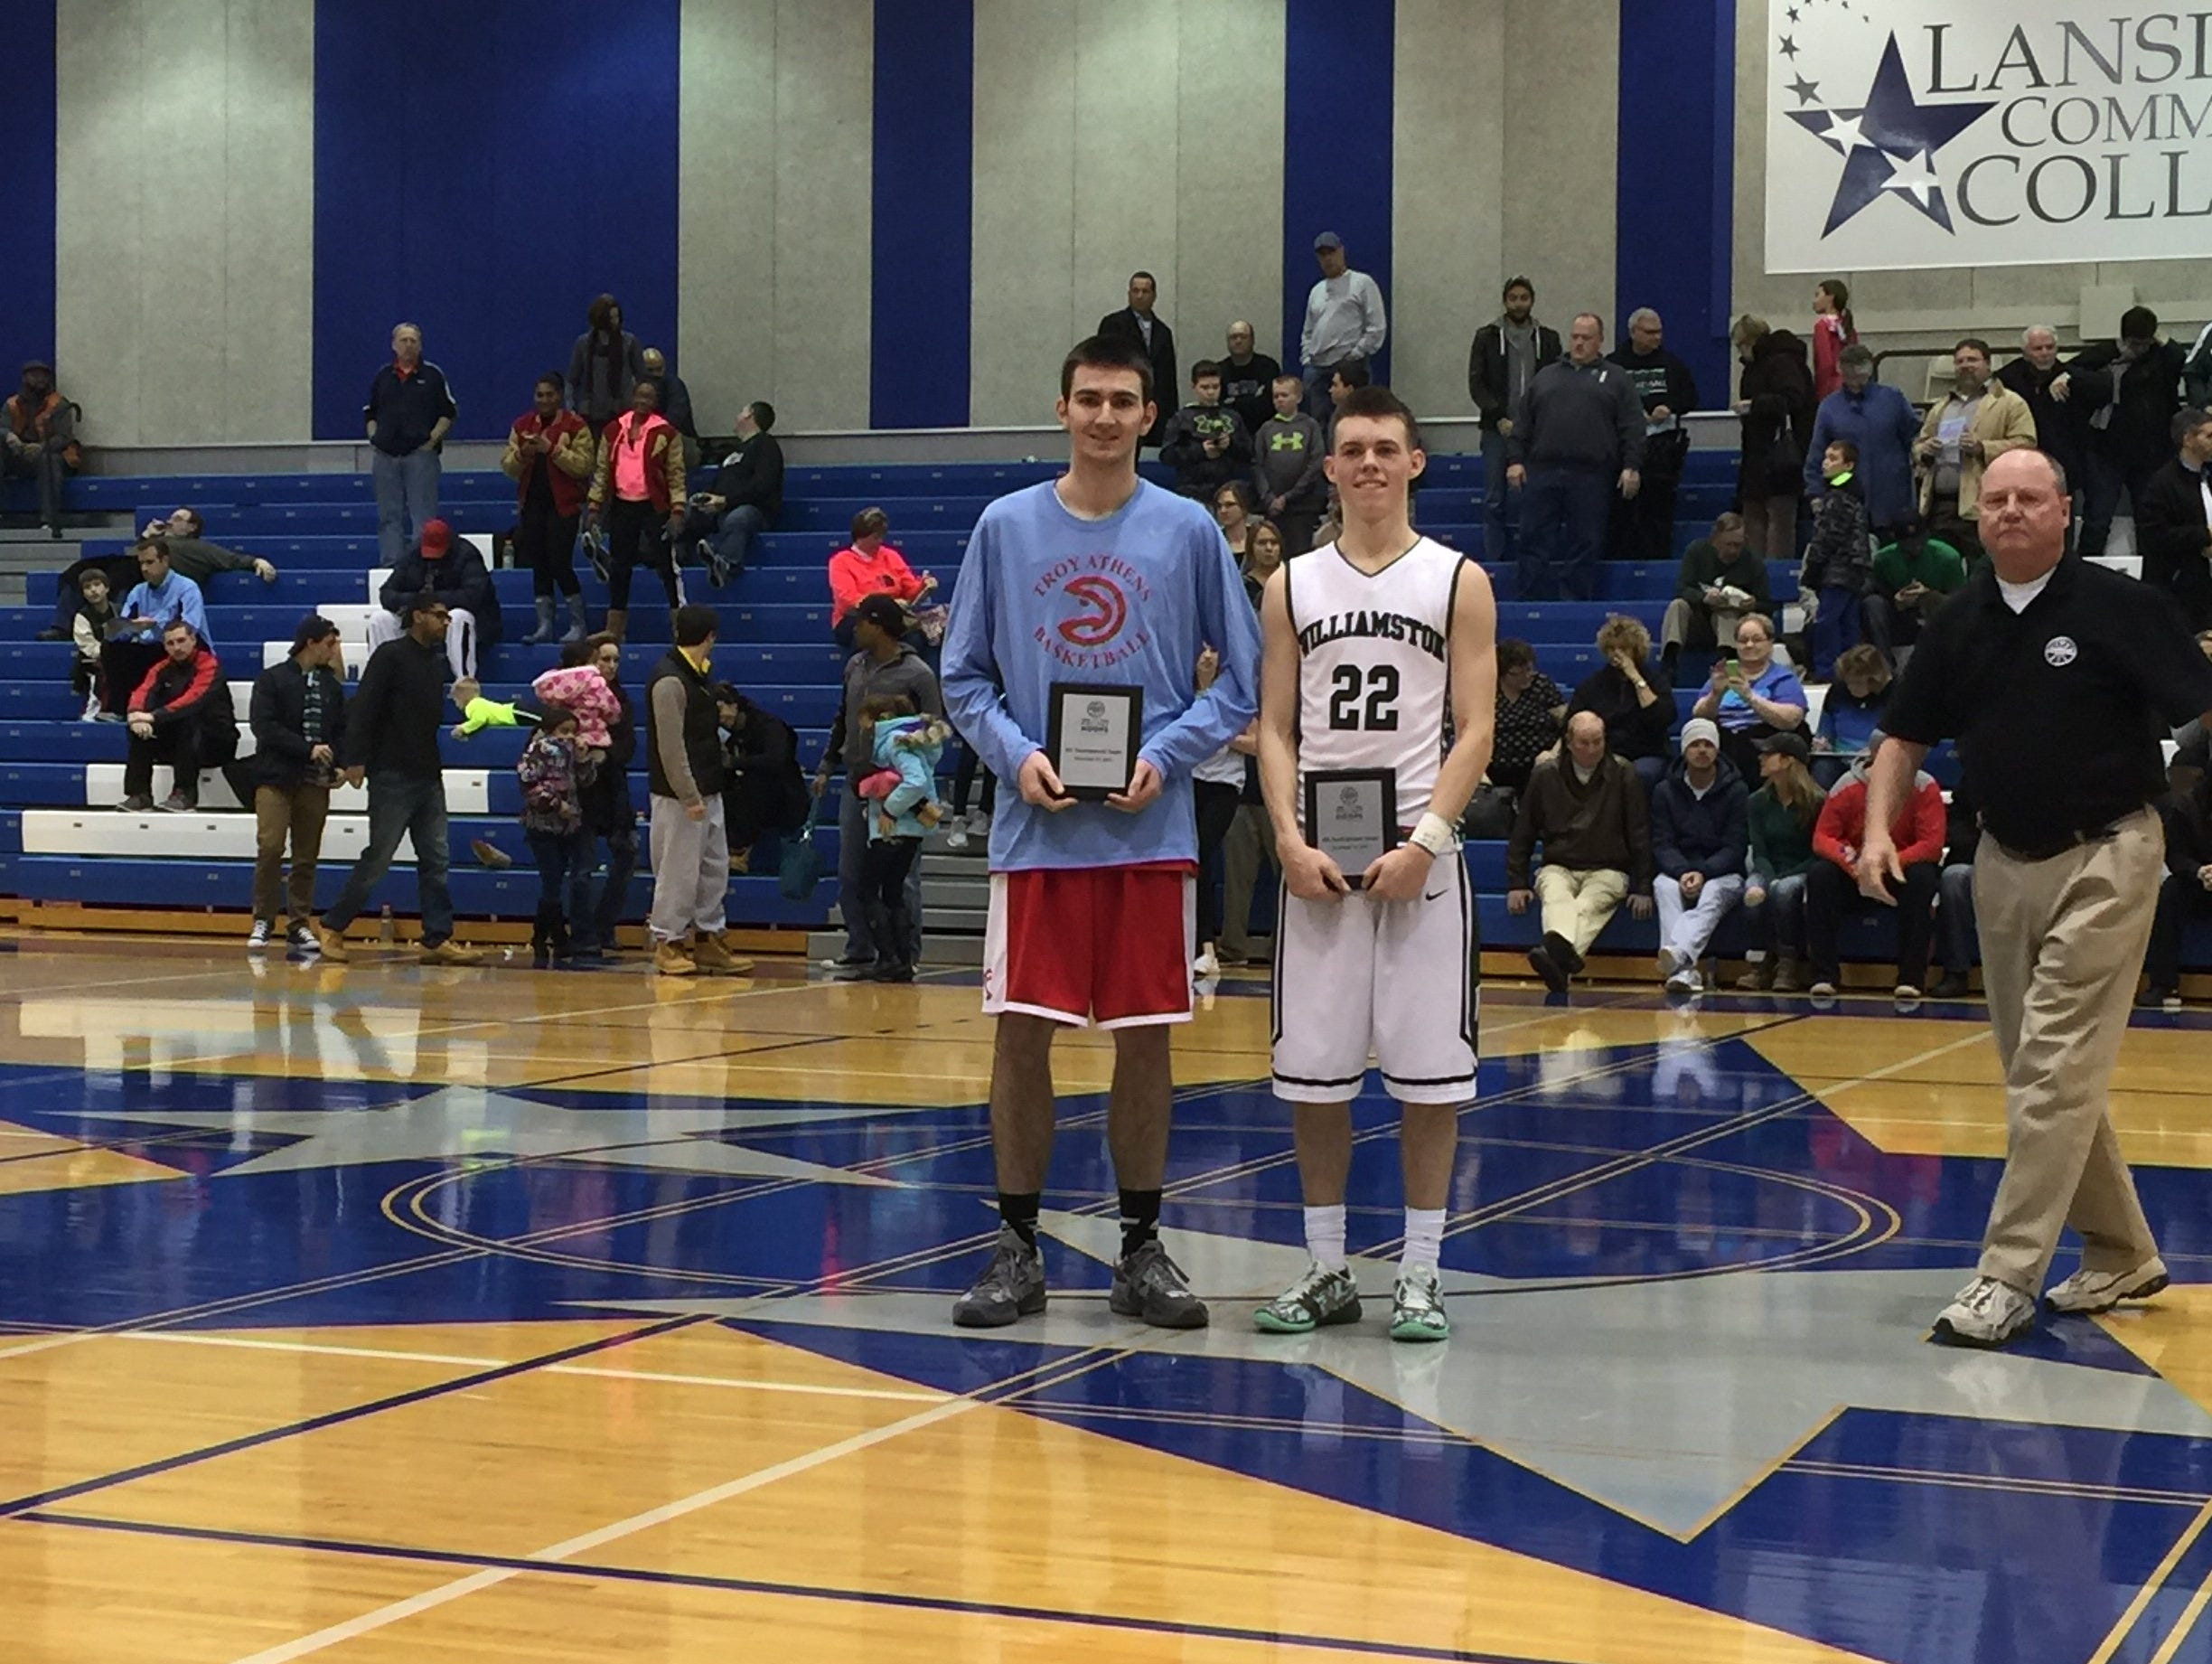 Troy Athens' Justin Koch, left, and Williamston's Riley Lewis were named to the Holiday Hoops Invitational all-tournament team Tuesday. Lewis scored 42 points in Williamston's 80-62 win.